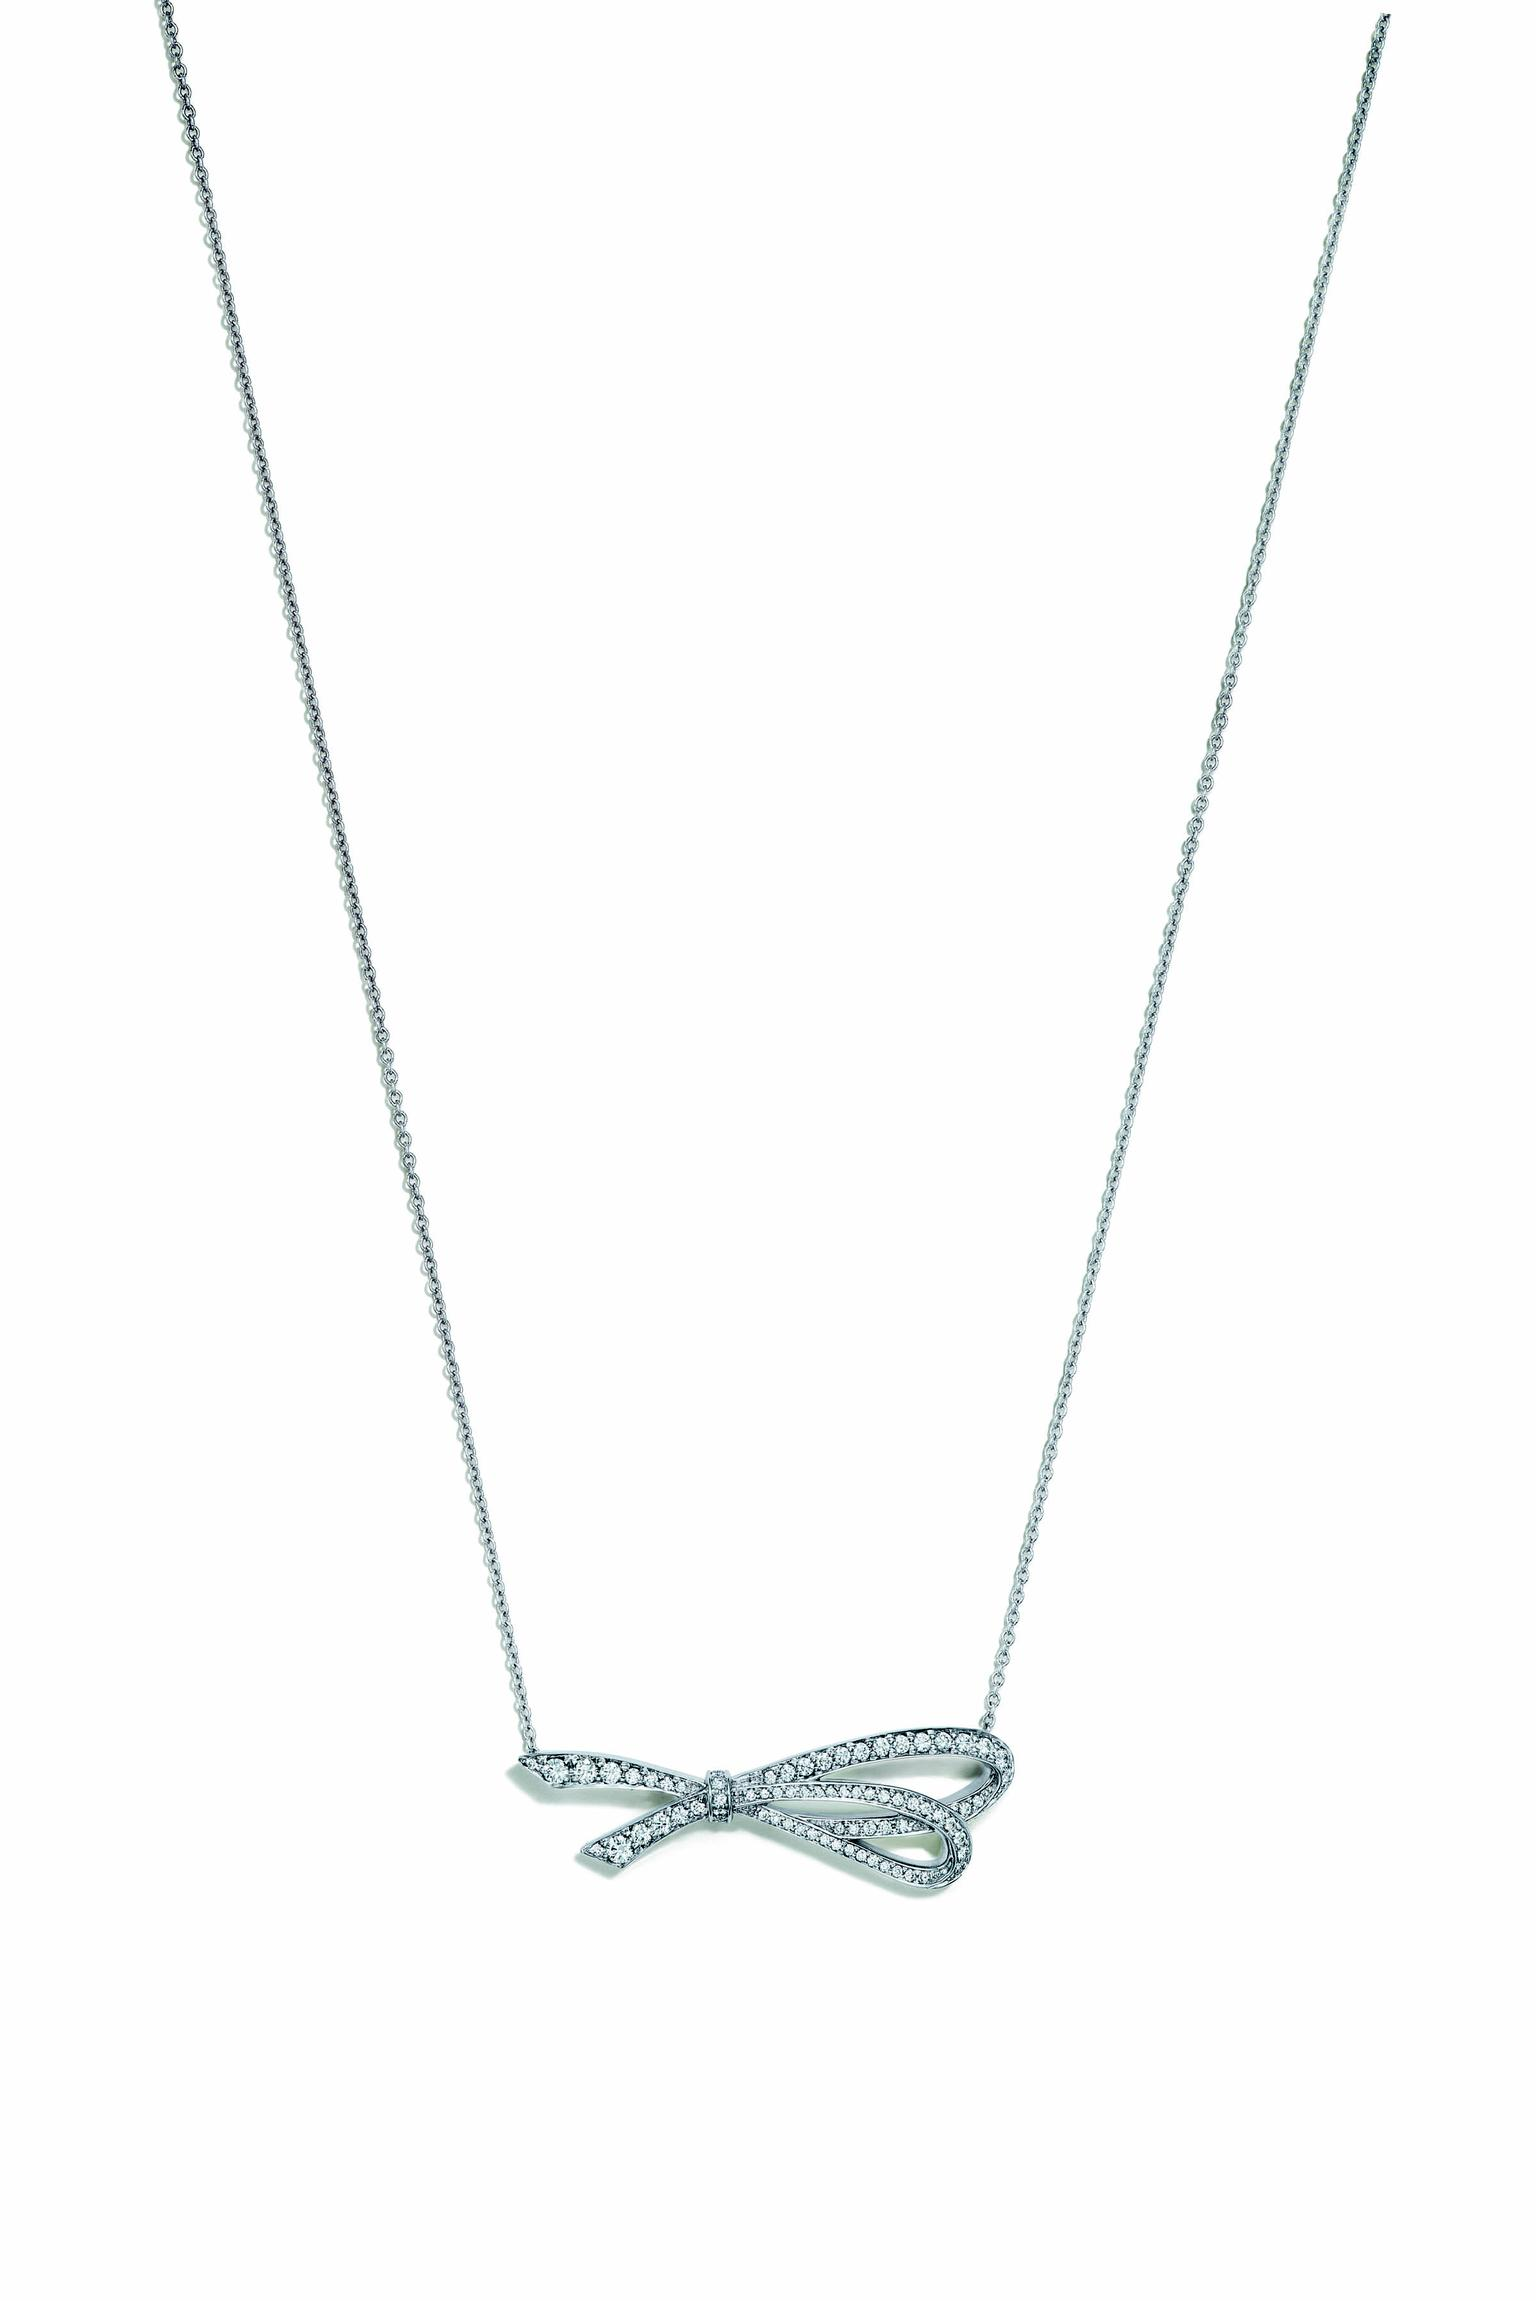 Tiffany Bow pendant